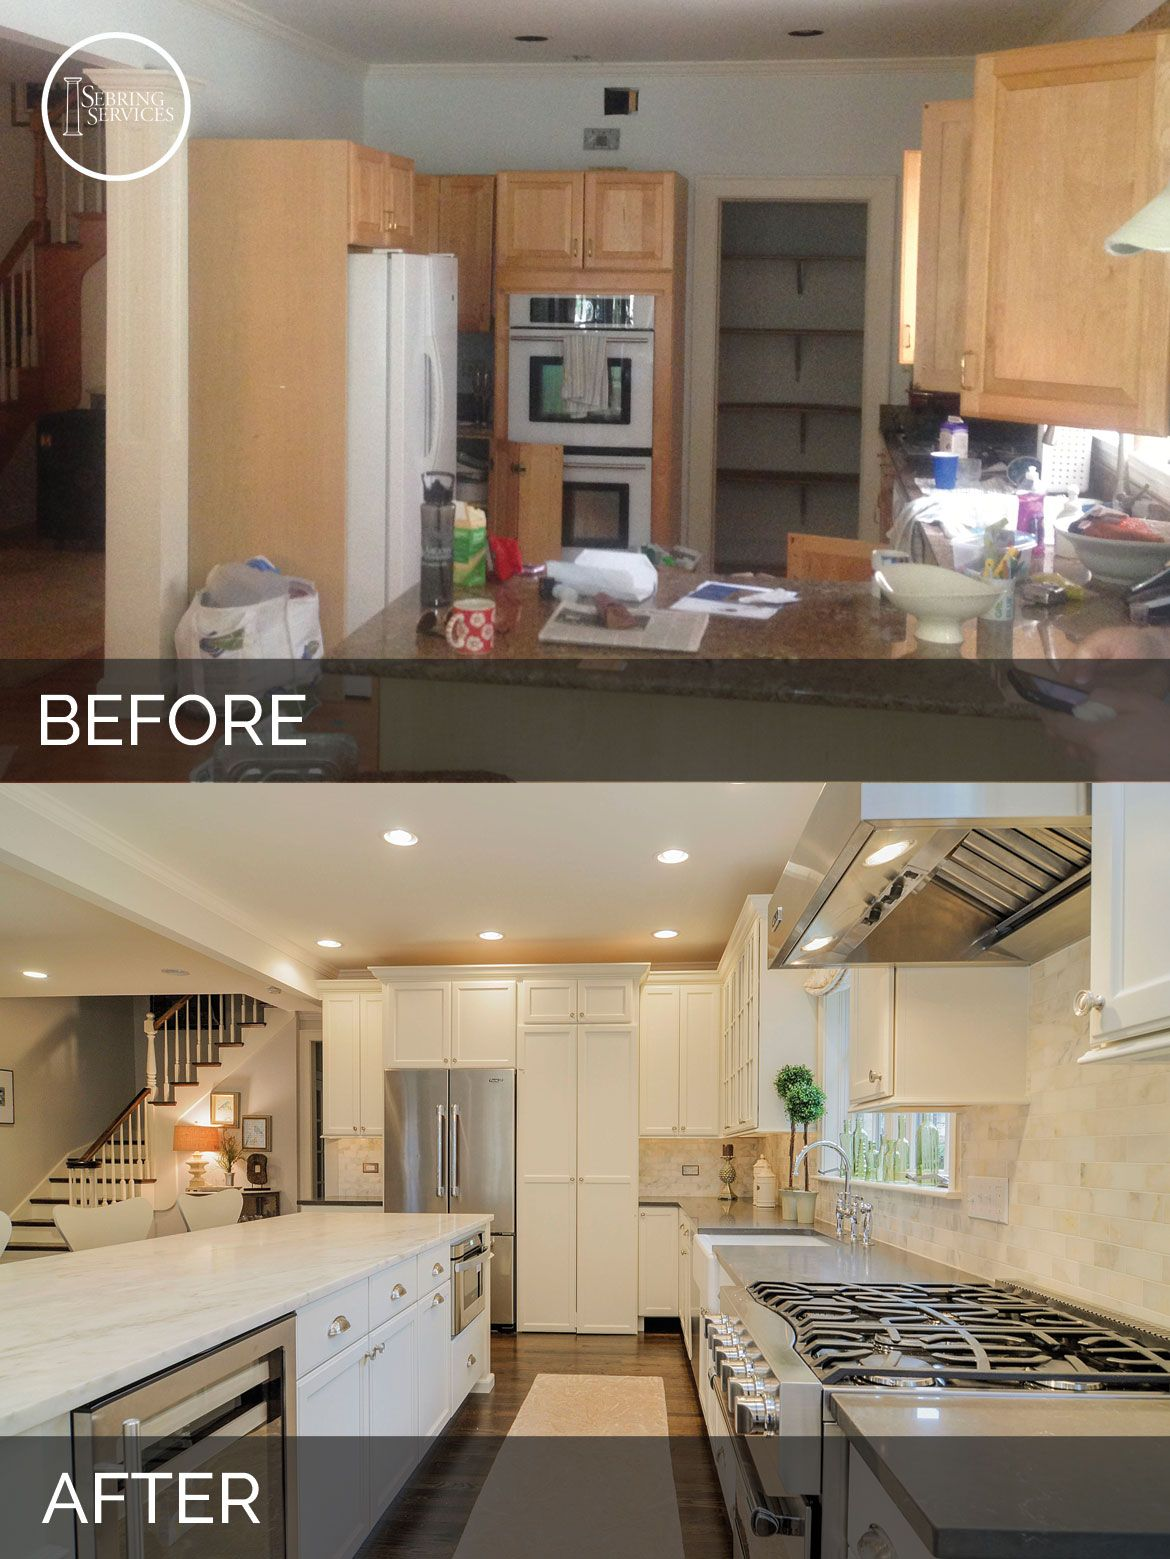 Ben U0026 Ellenu0027s Kitchen Before U0026 After | Home Remodeling Contractors |  Sebring Services